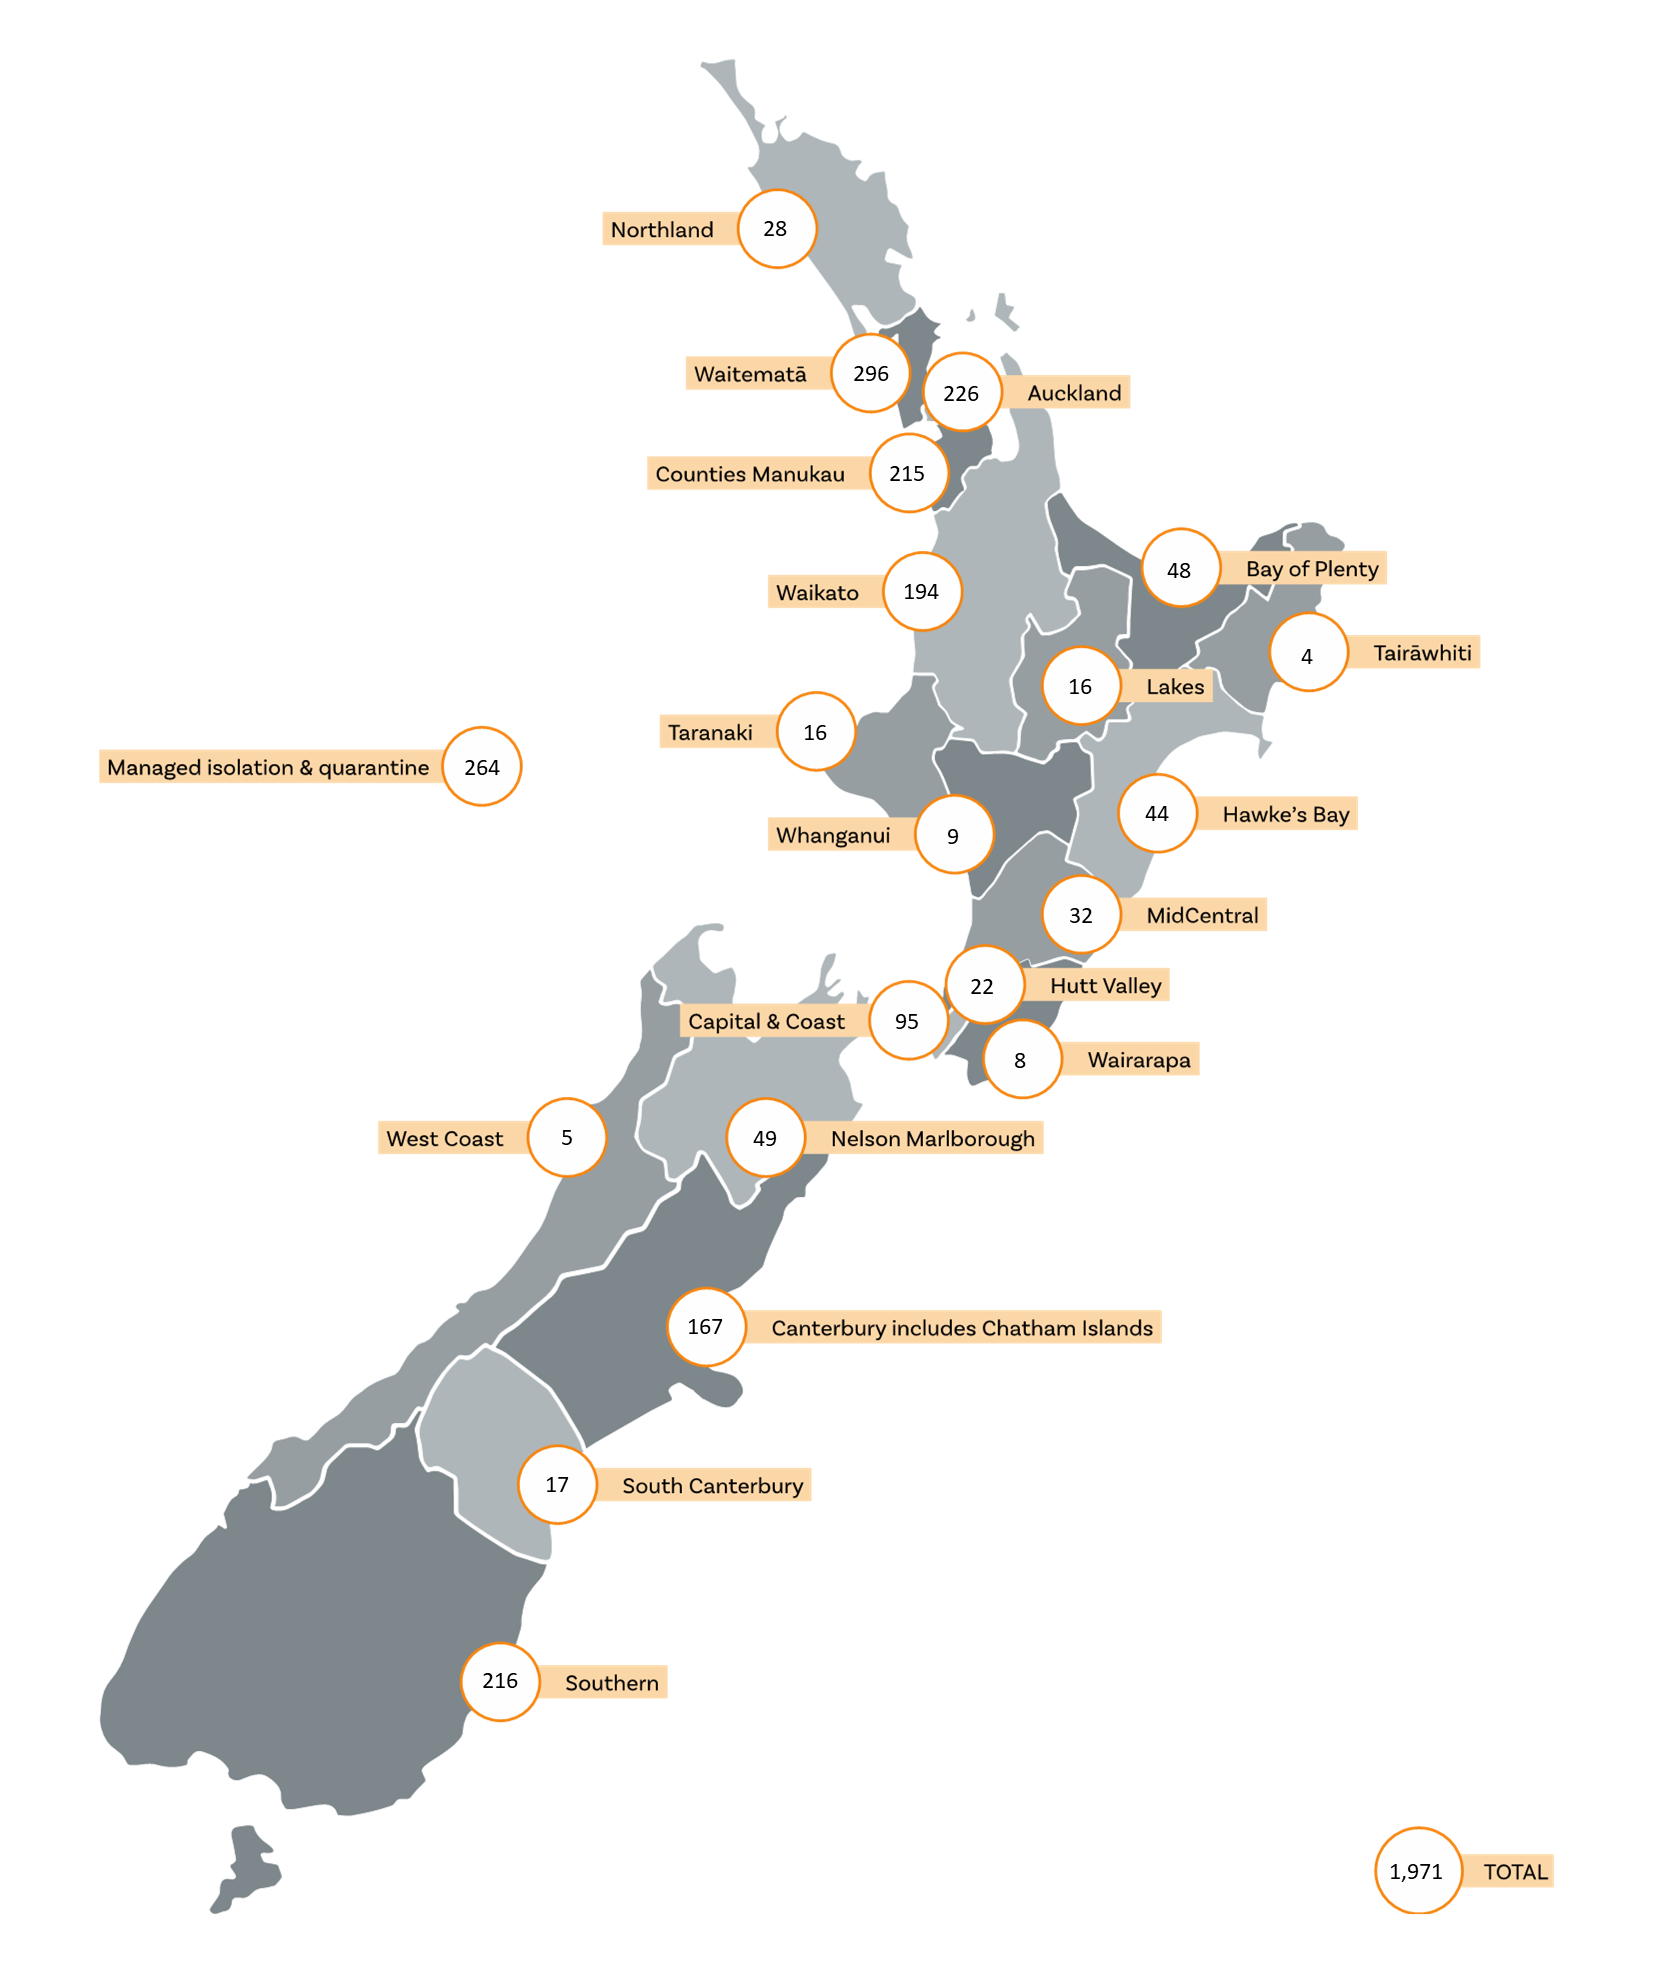 Map showing number of cases by DHB - see data table following.